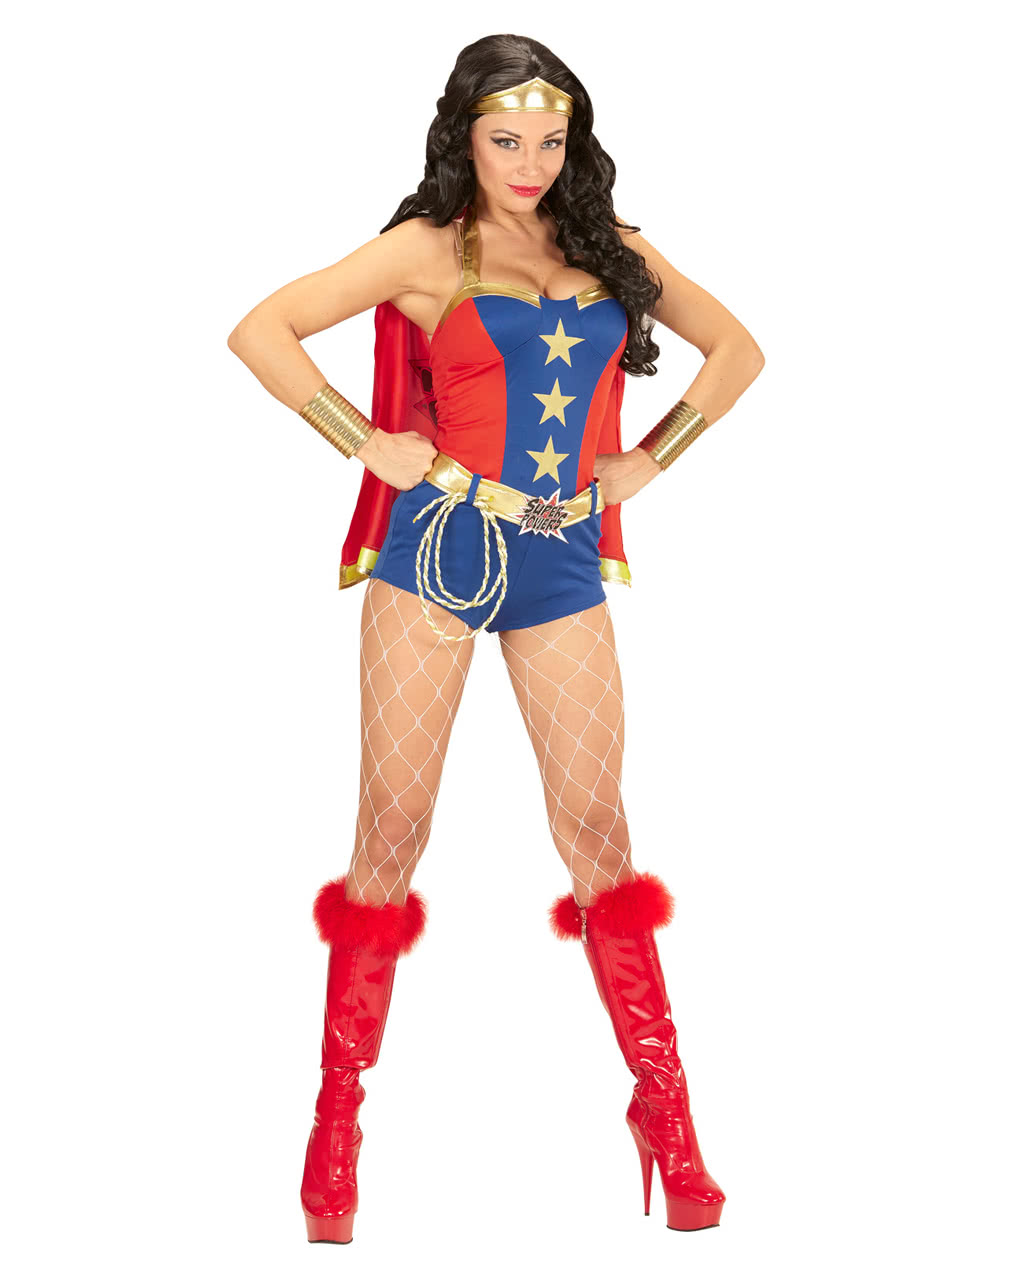 Sexy wonder woman costume for sale